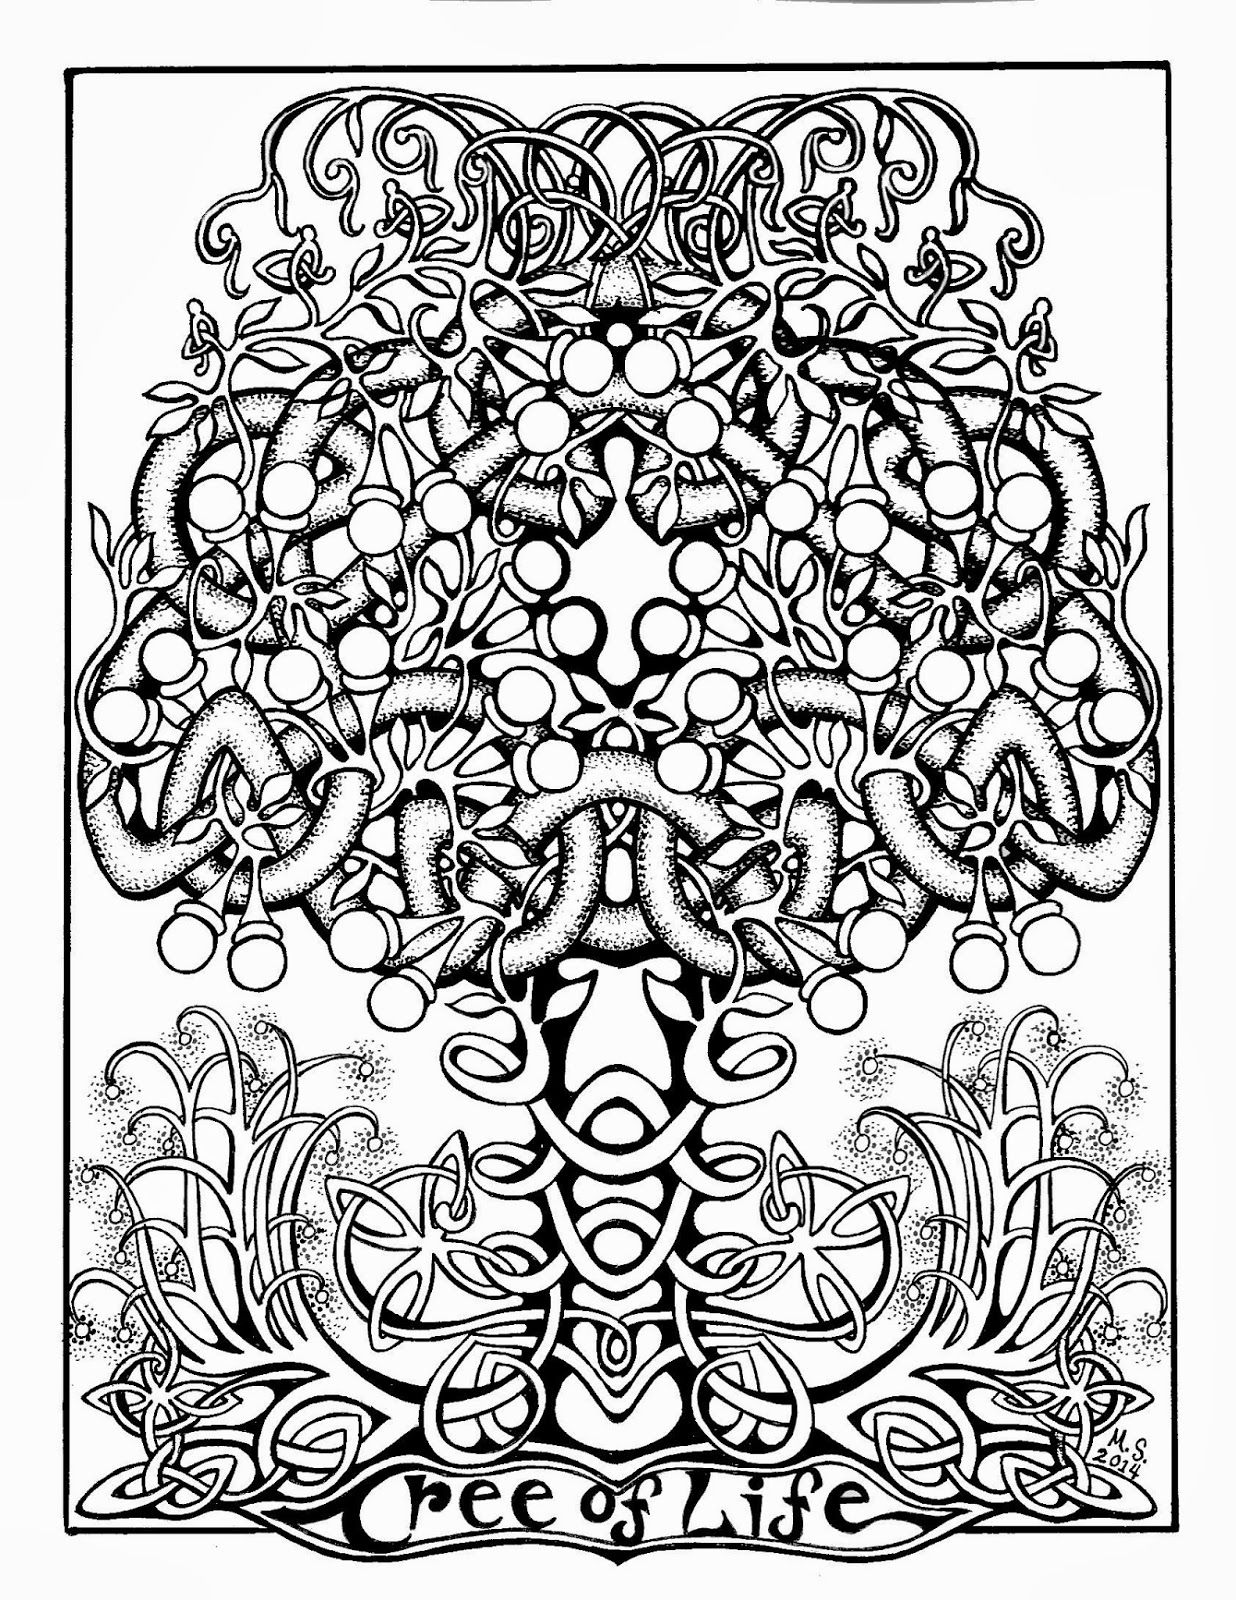 Book of life for coloring - Almost All Kinds Of Tree Found In The Celtic Countries Have Been Thought To Have Coloring Book